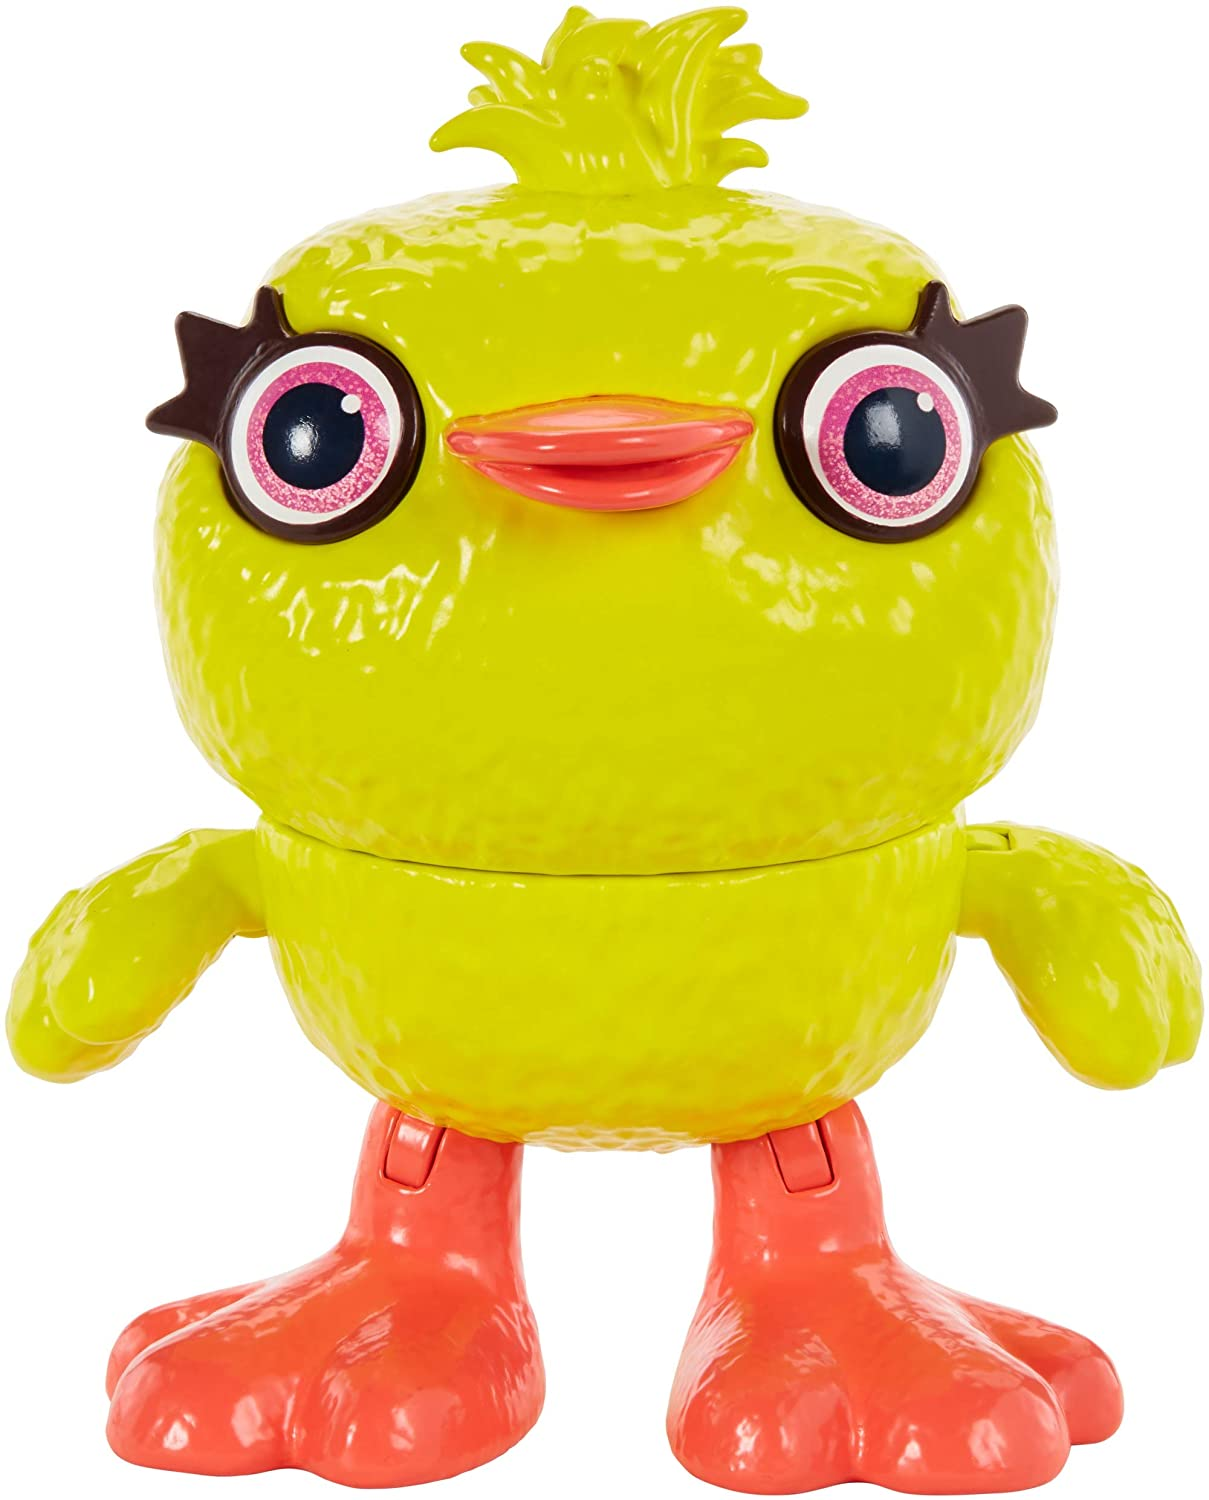 Disney Pixar Toy Story Ducky Figure, 5